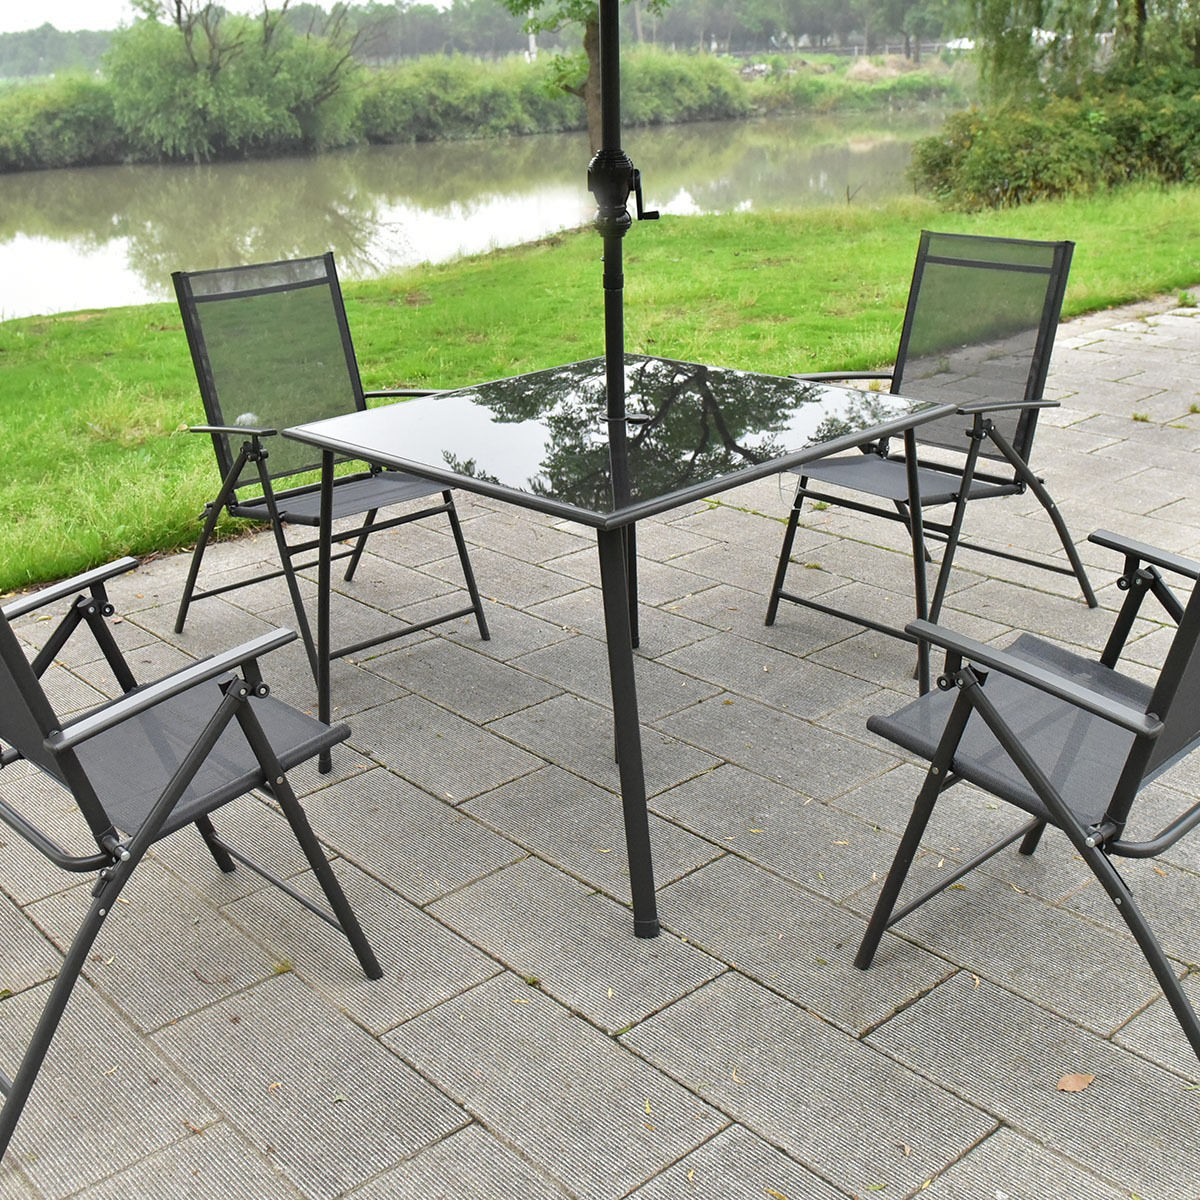 Folding Chairs With Umbrella 6pc Patio Garden Set Furniture 4 Folding Chairs Table With